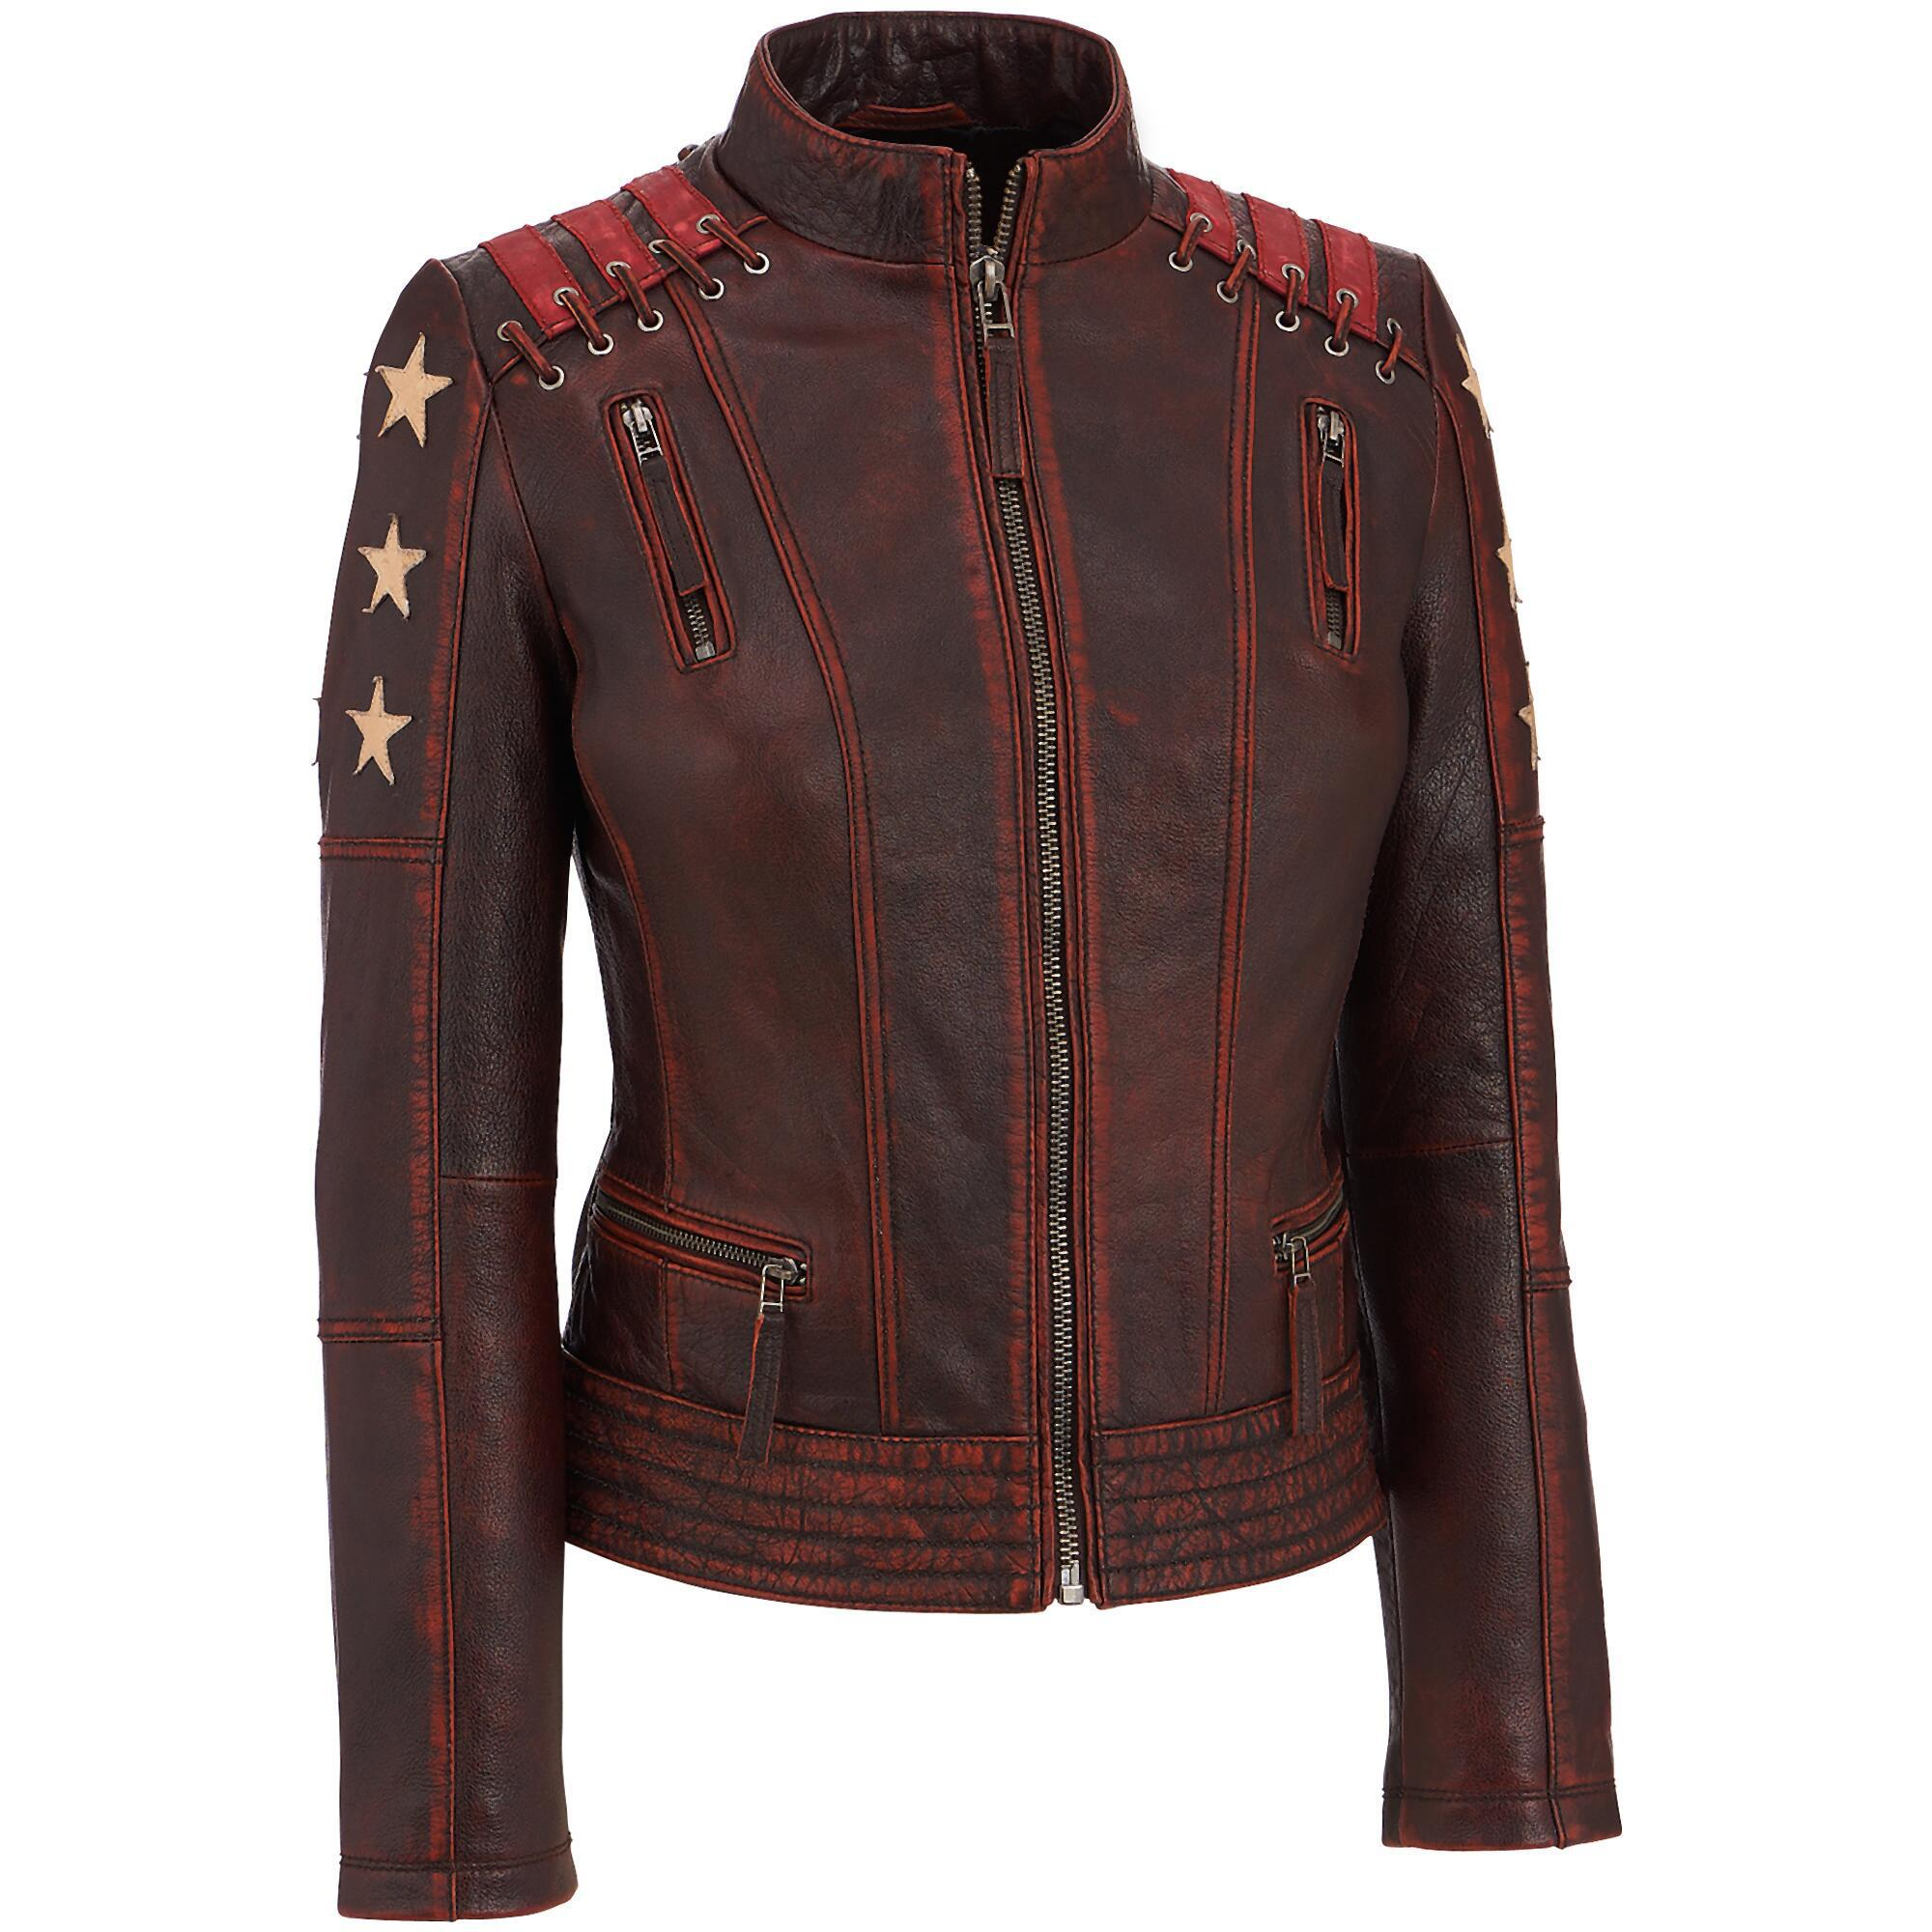 31a8daa4a3032 Wilsons Leather - Multicolor Black Rivet Distressed Stars And Stripes  Leather Jacket W  Lacing Detail. View fullscreen